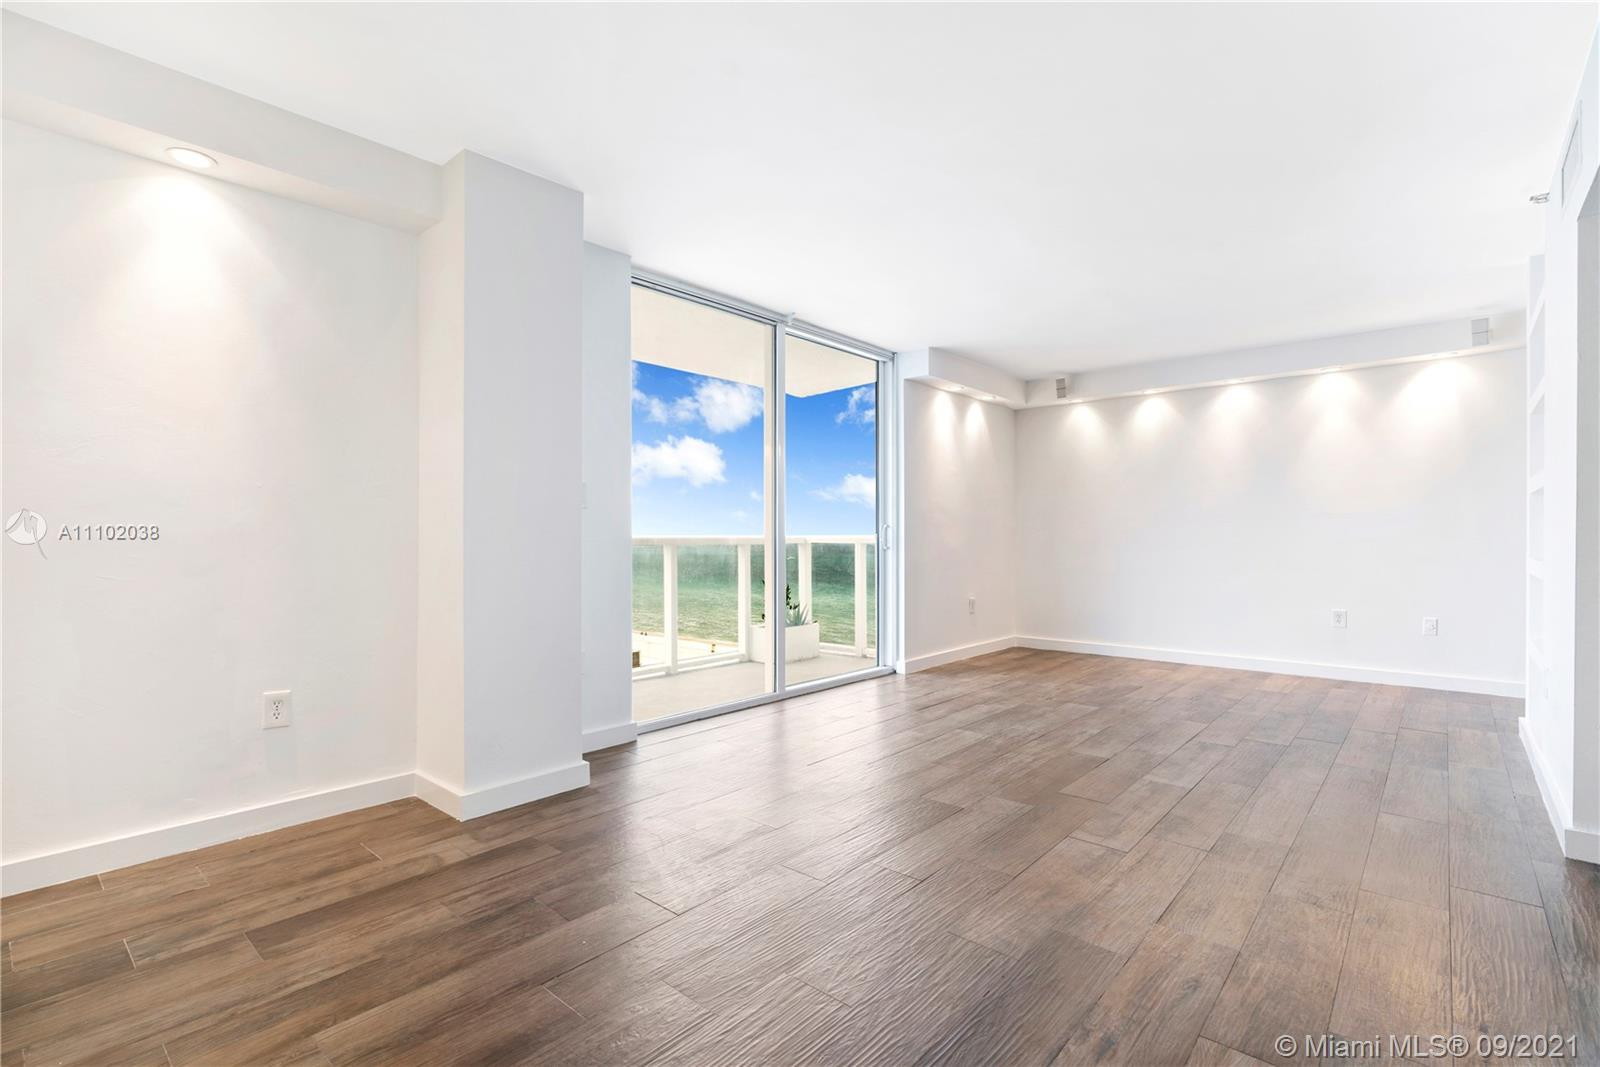 Oceanfront Boutique Condo in Miami Beach. 11th Floor Property clears building next door allowing for